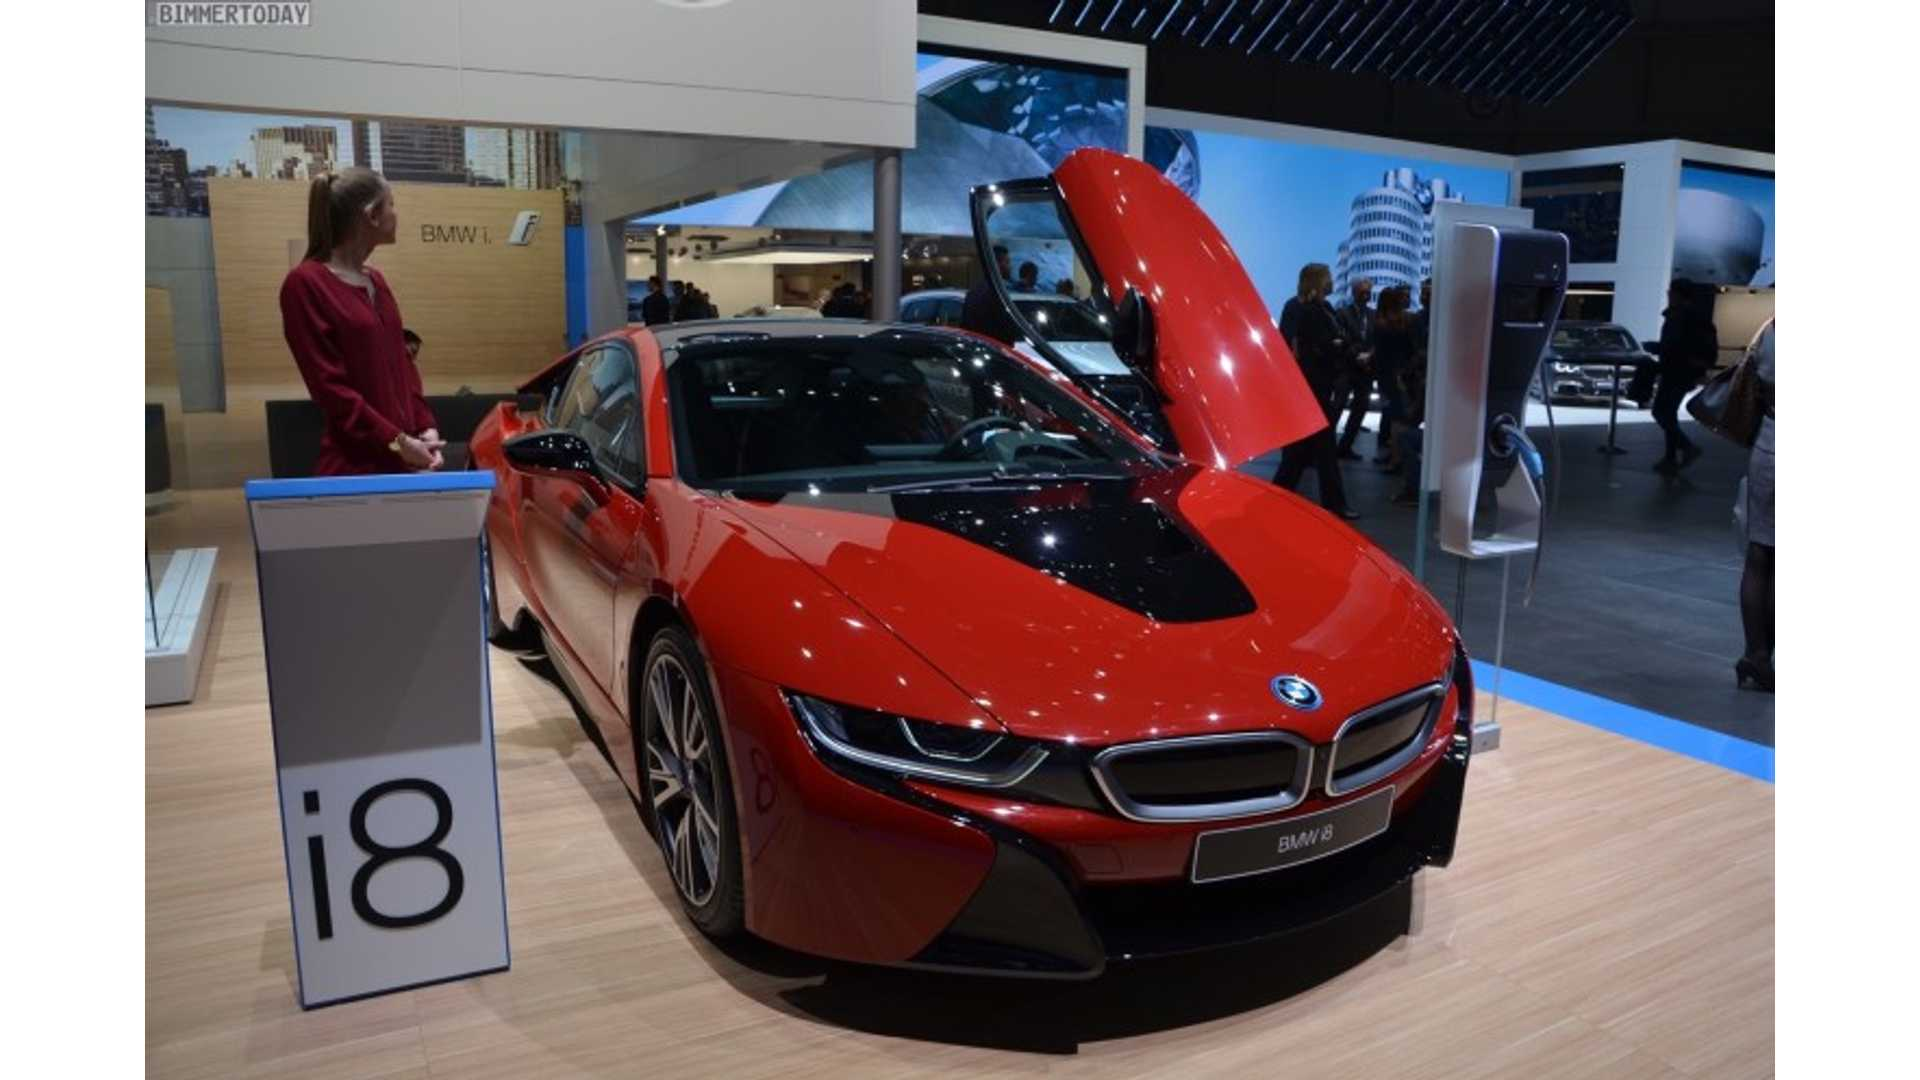 Refreshed 2018 Bmw I8 To Get Increased Electric Range More Power